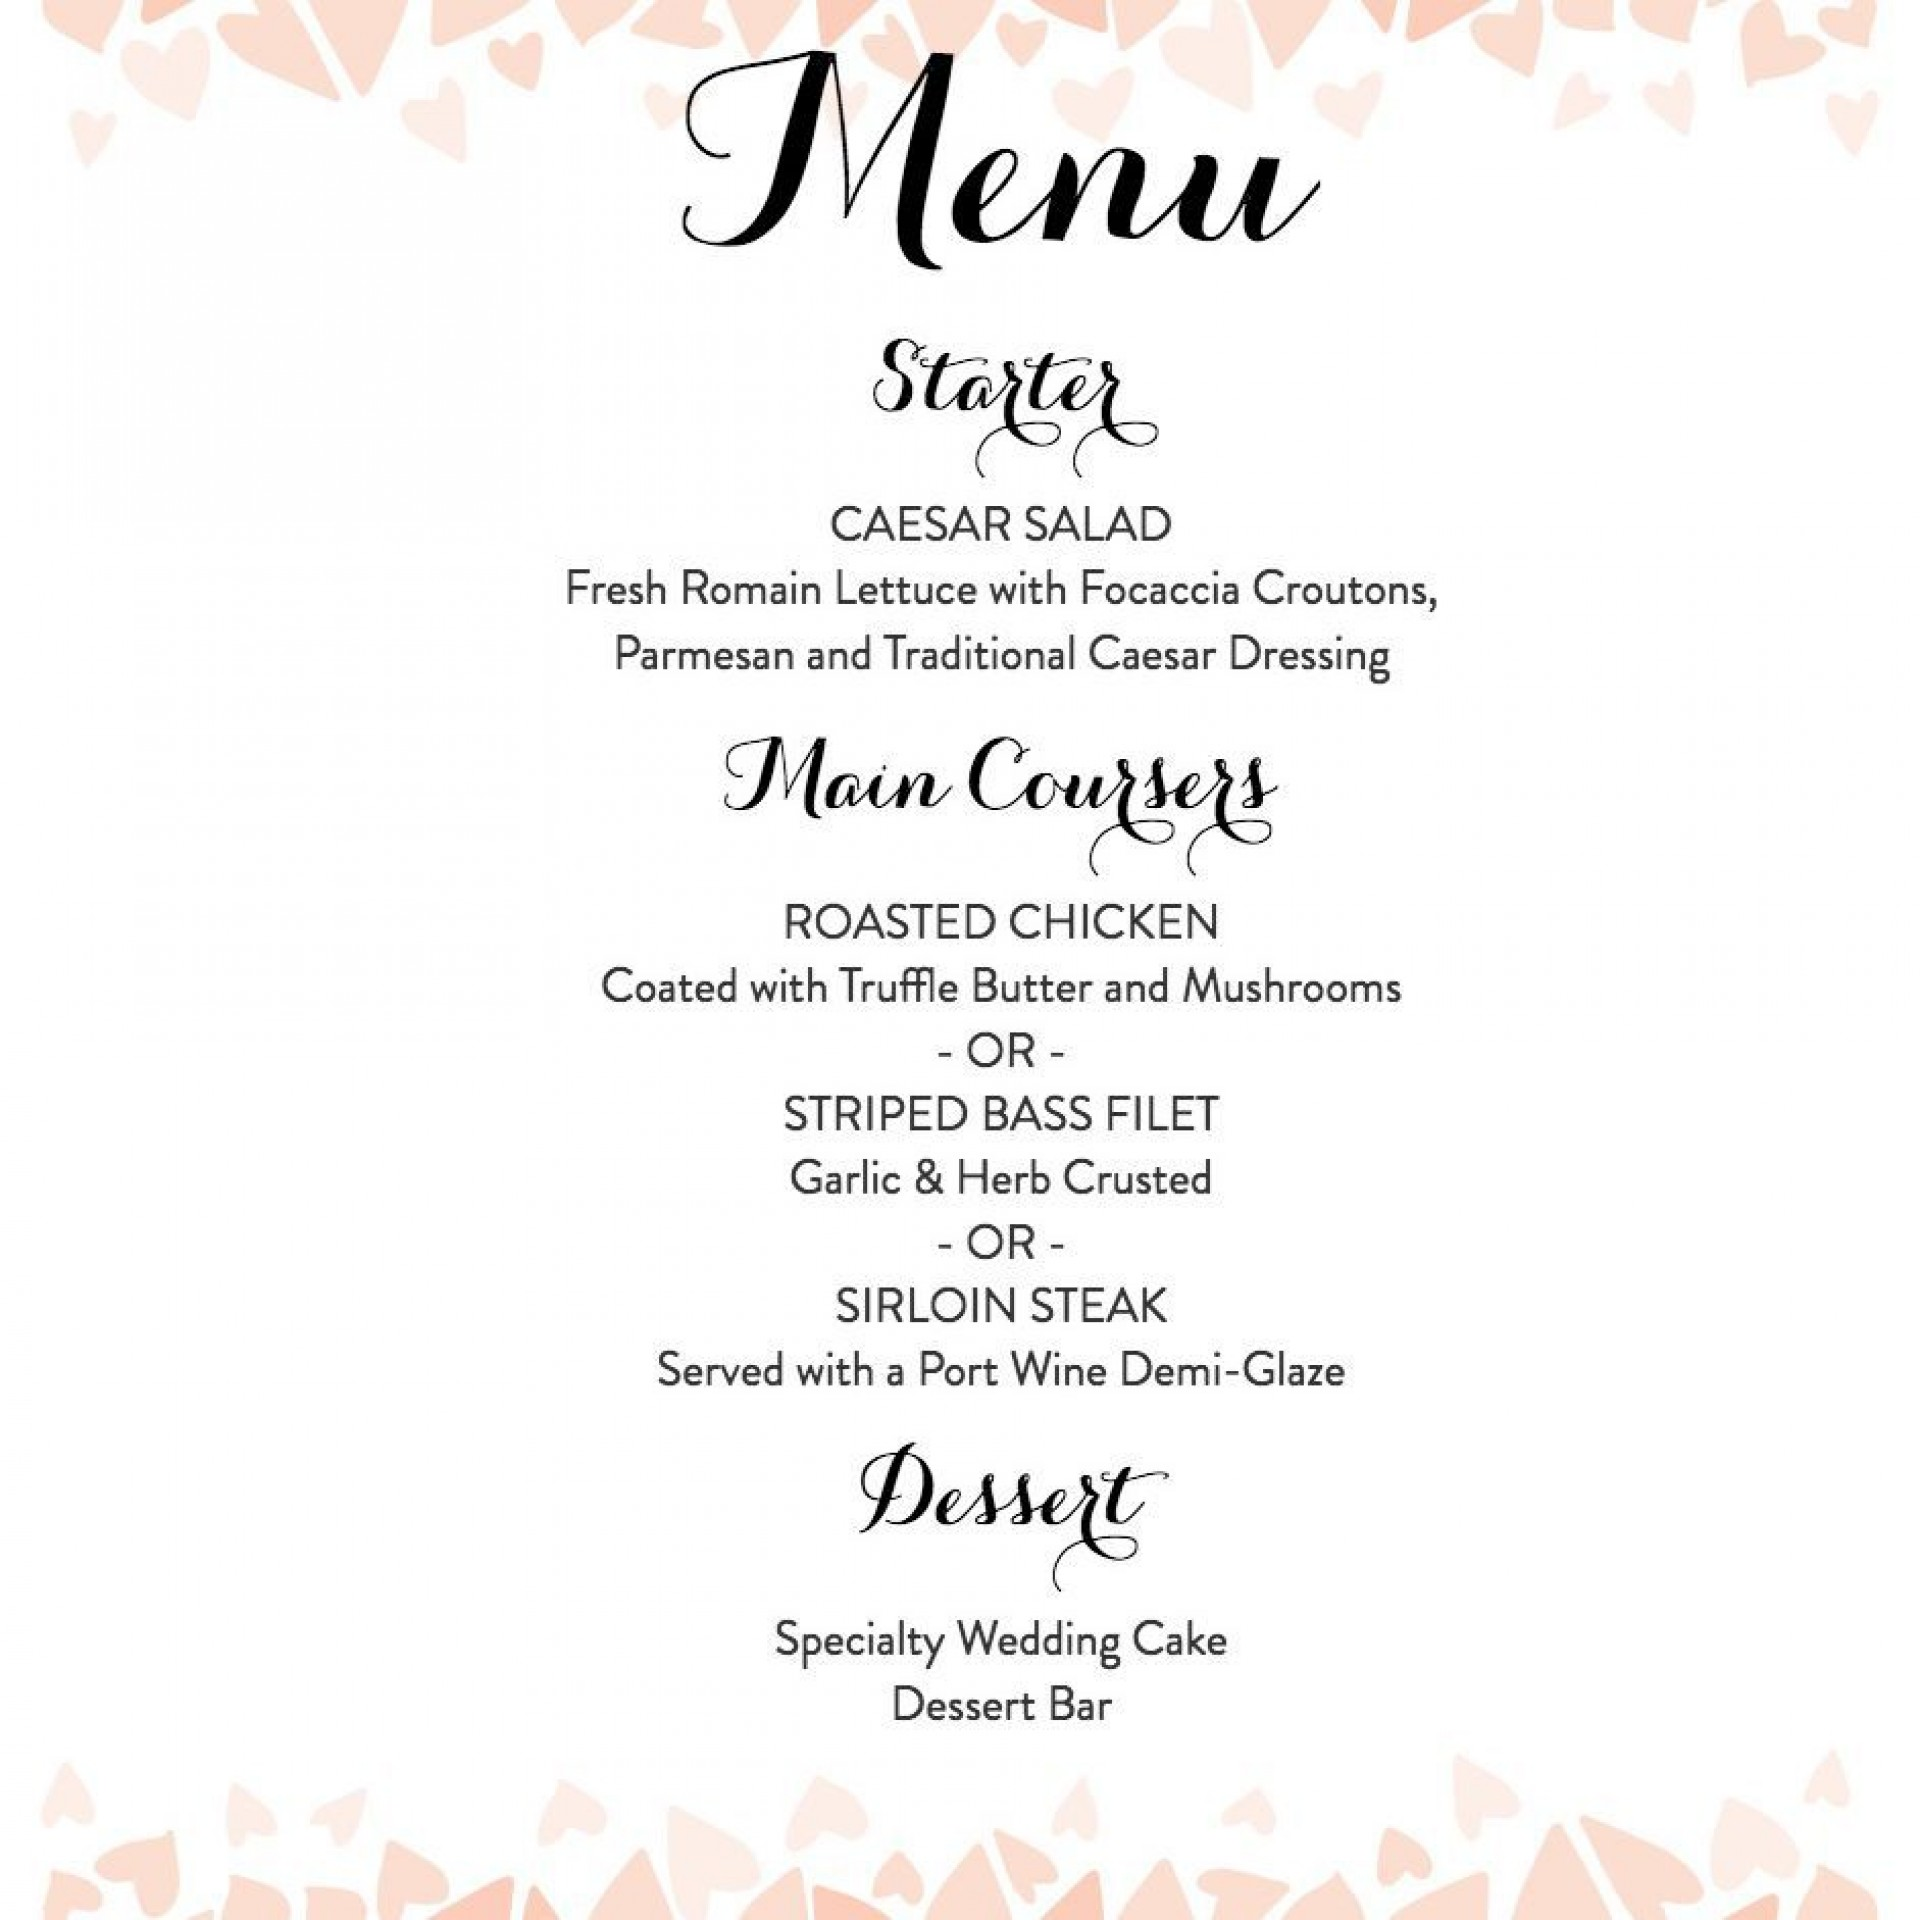 008 Staggering Free Wedding Menu Template To Print Picture  Printable Card1920